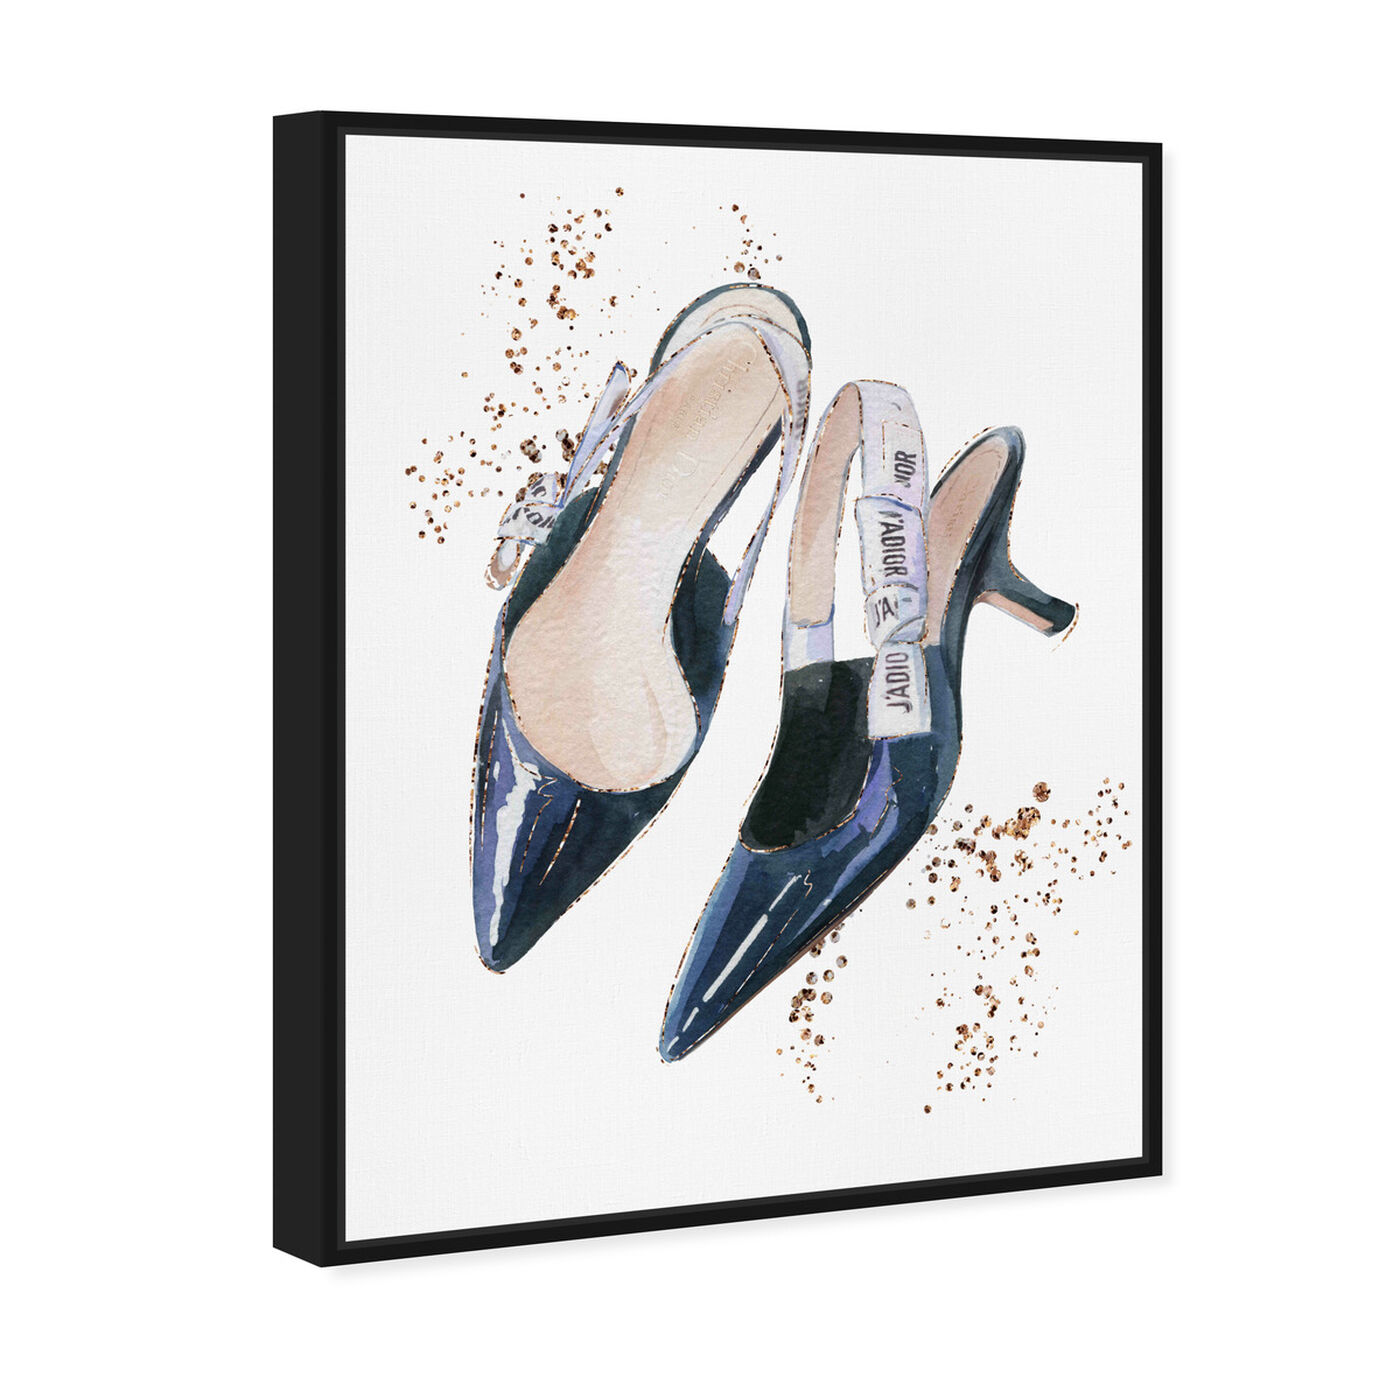 Angled view of I adore my daily shoes featuring fashion and glam and shoes art.